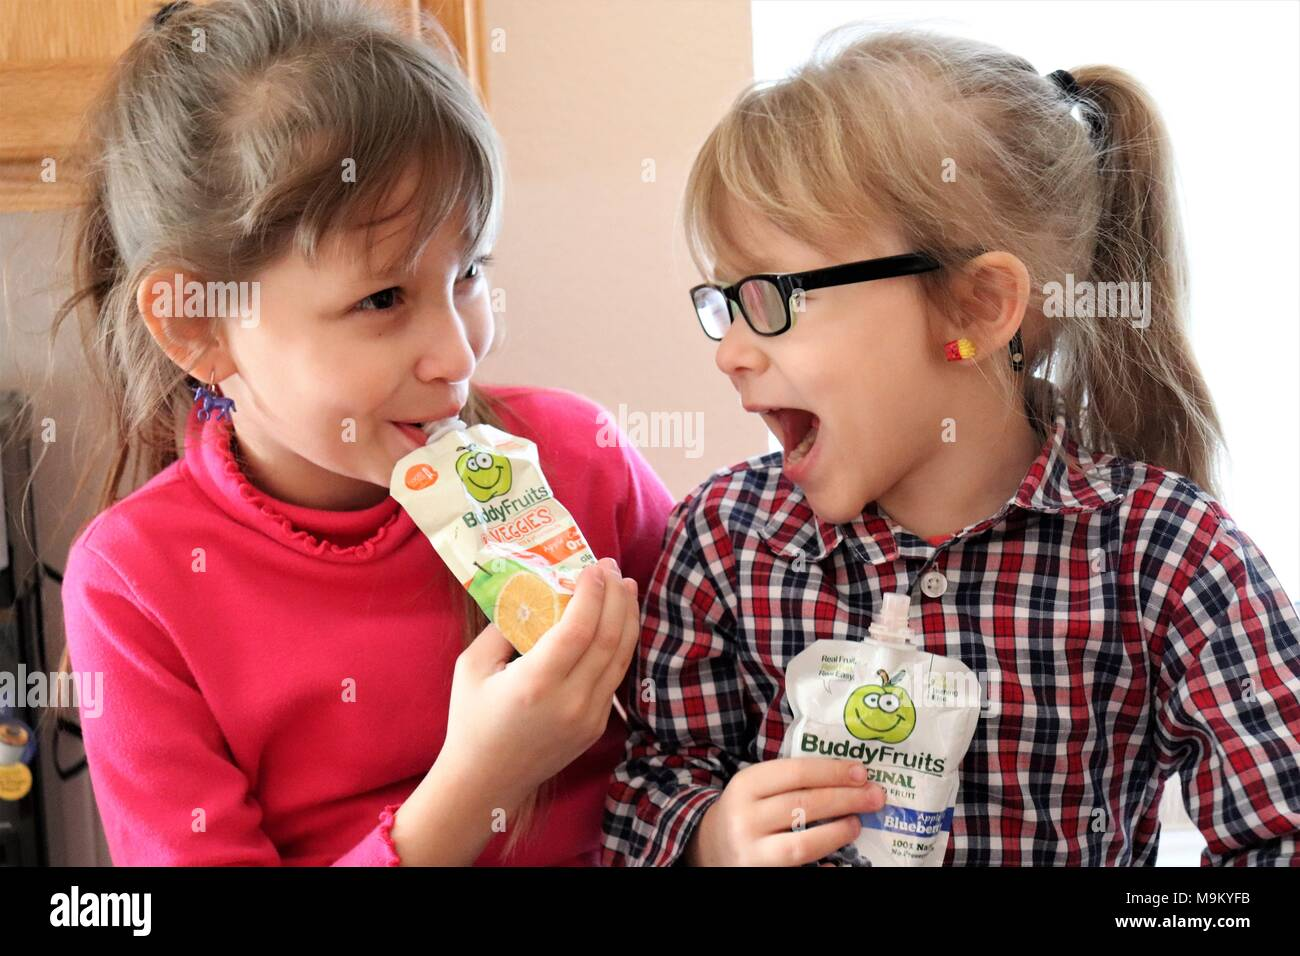 Sisters enjoying Buddy Fruits in the kitchen - Stock Image